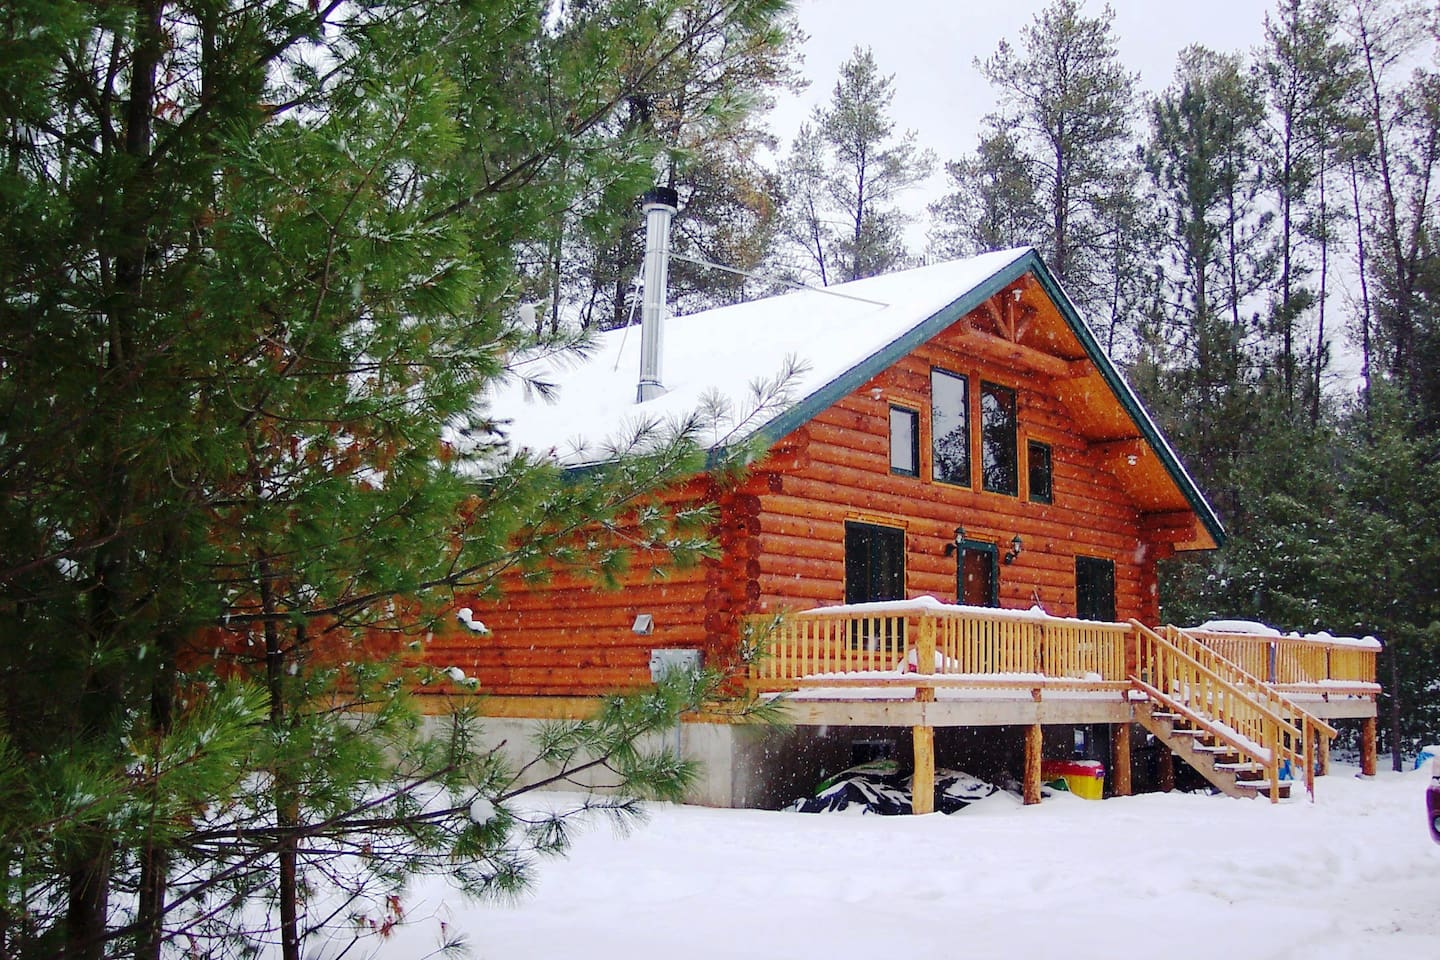 Buckhorn Lake Cabin in the Winter, ice fish, ski and snowshoe right out your door.